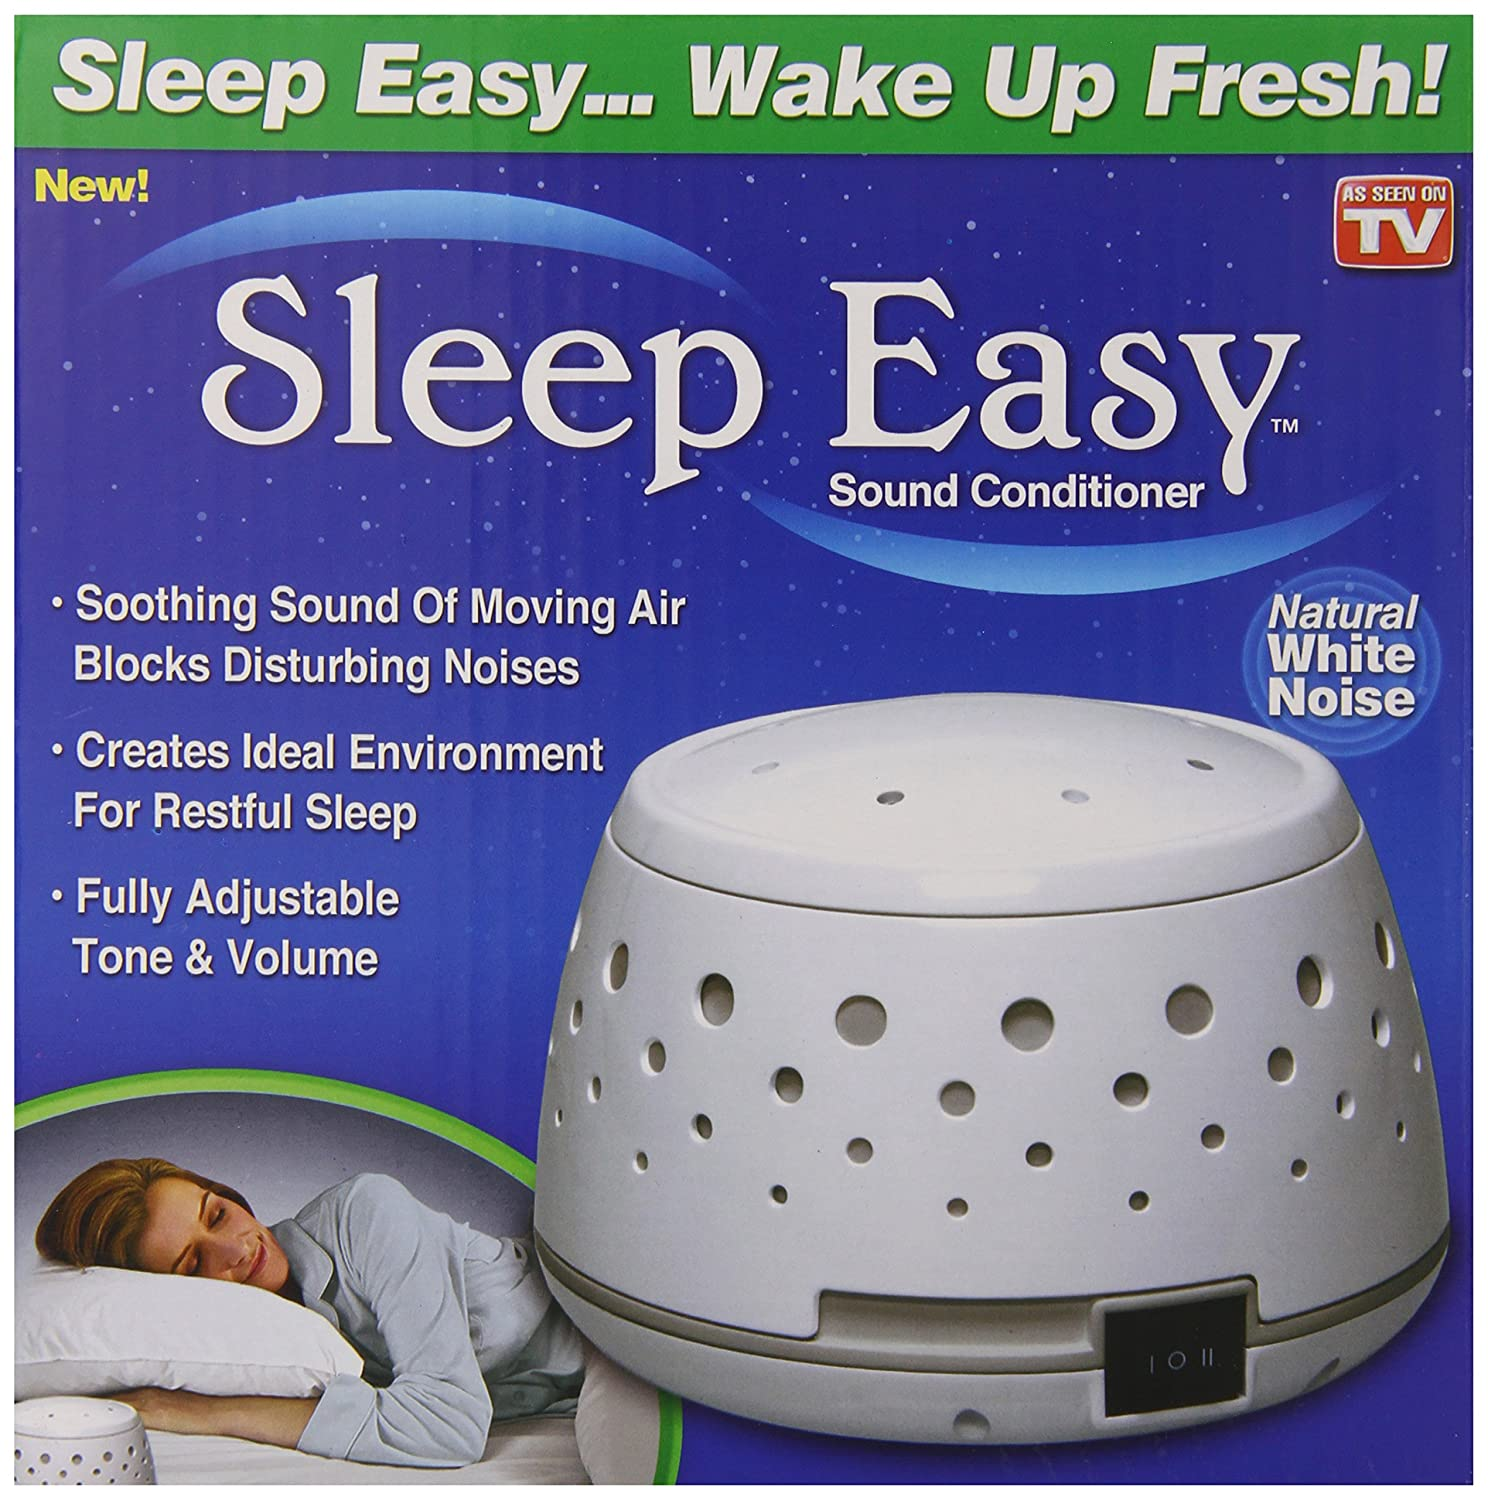 91%2BH0p-kP7L._SL1500_ Best three white noise machines on the market